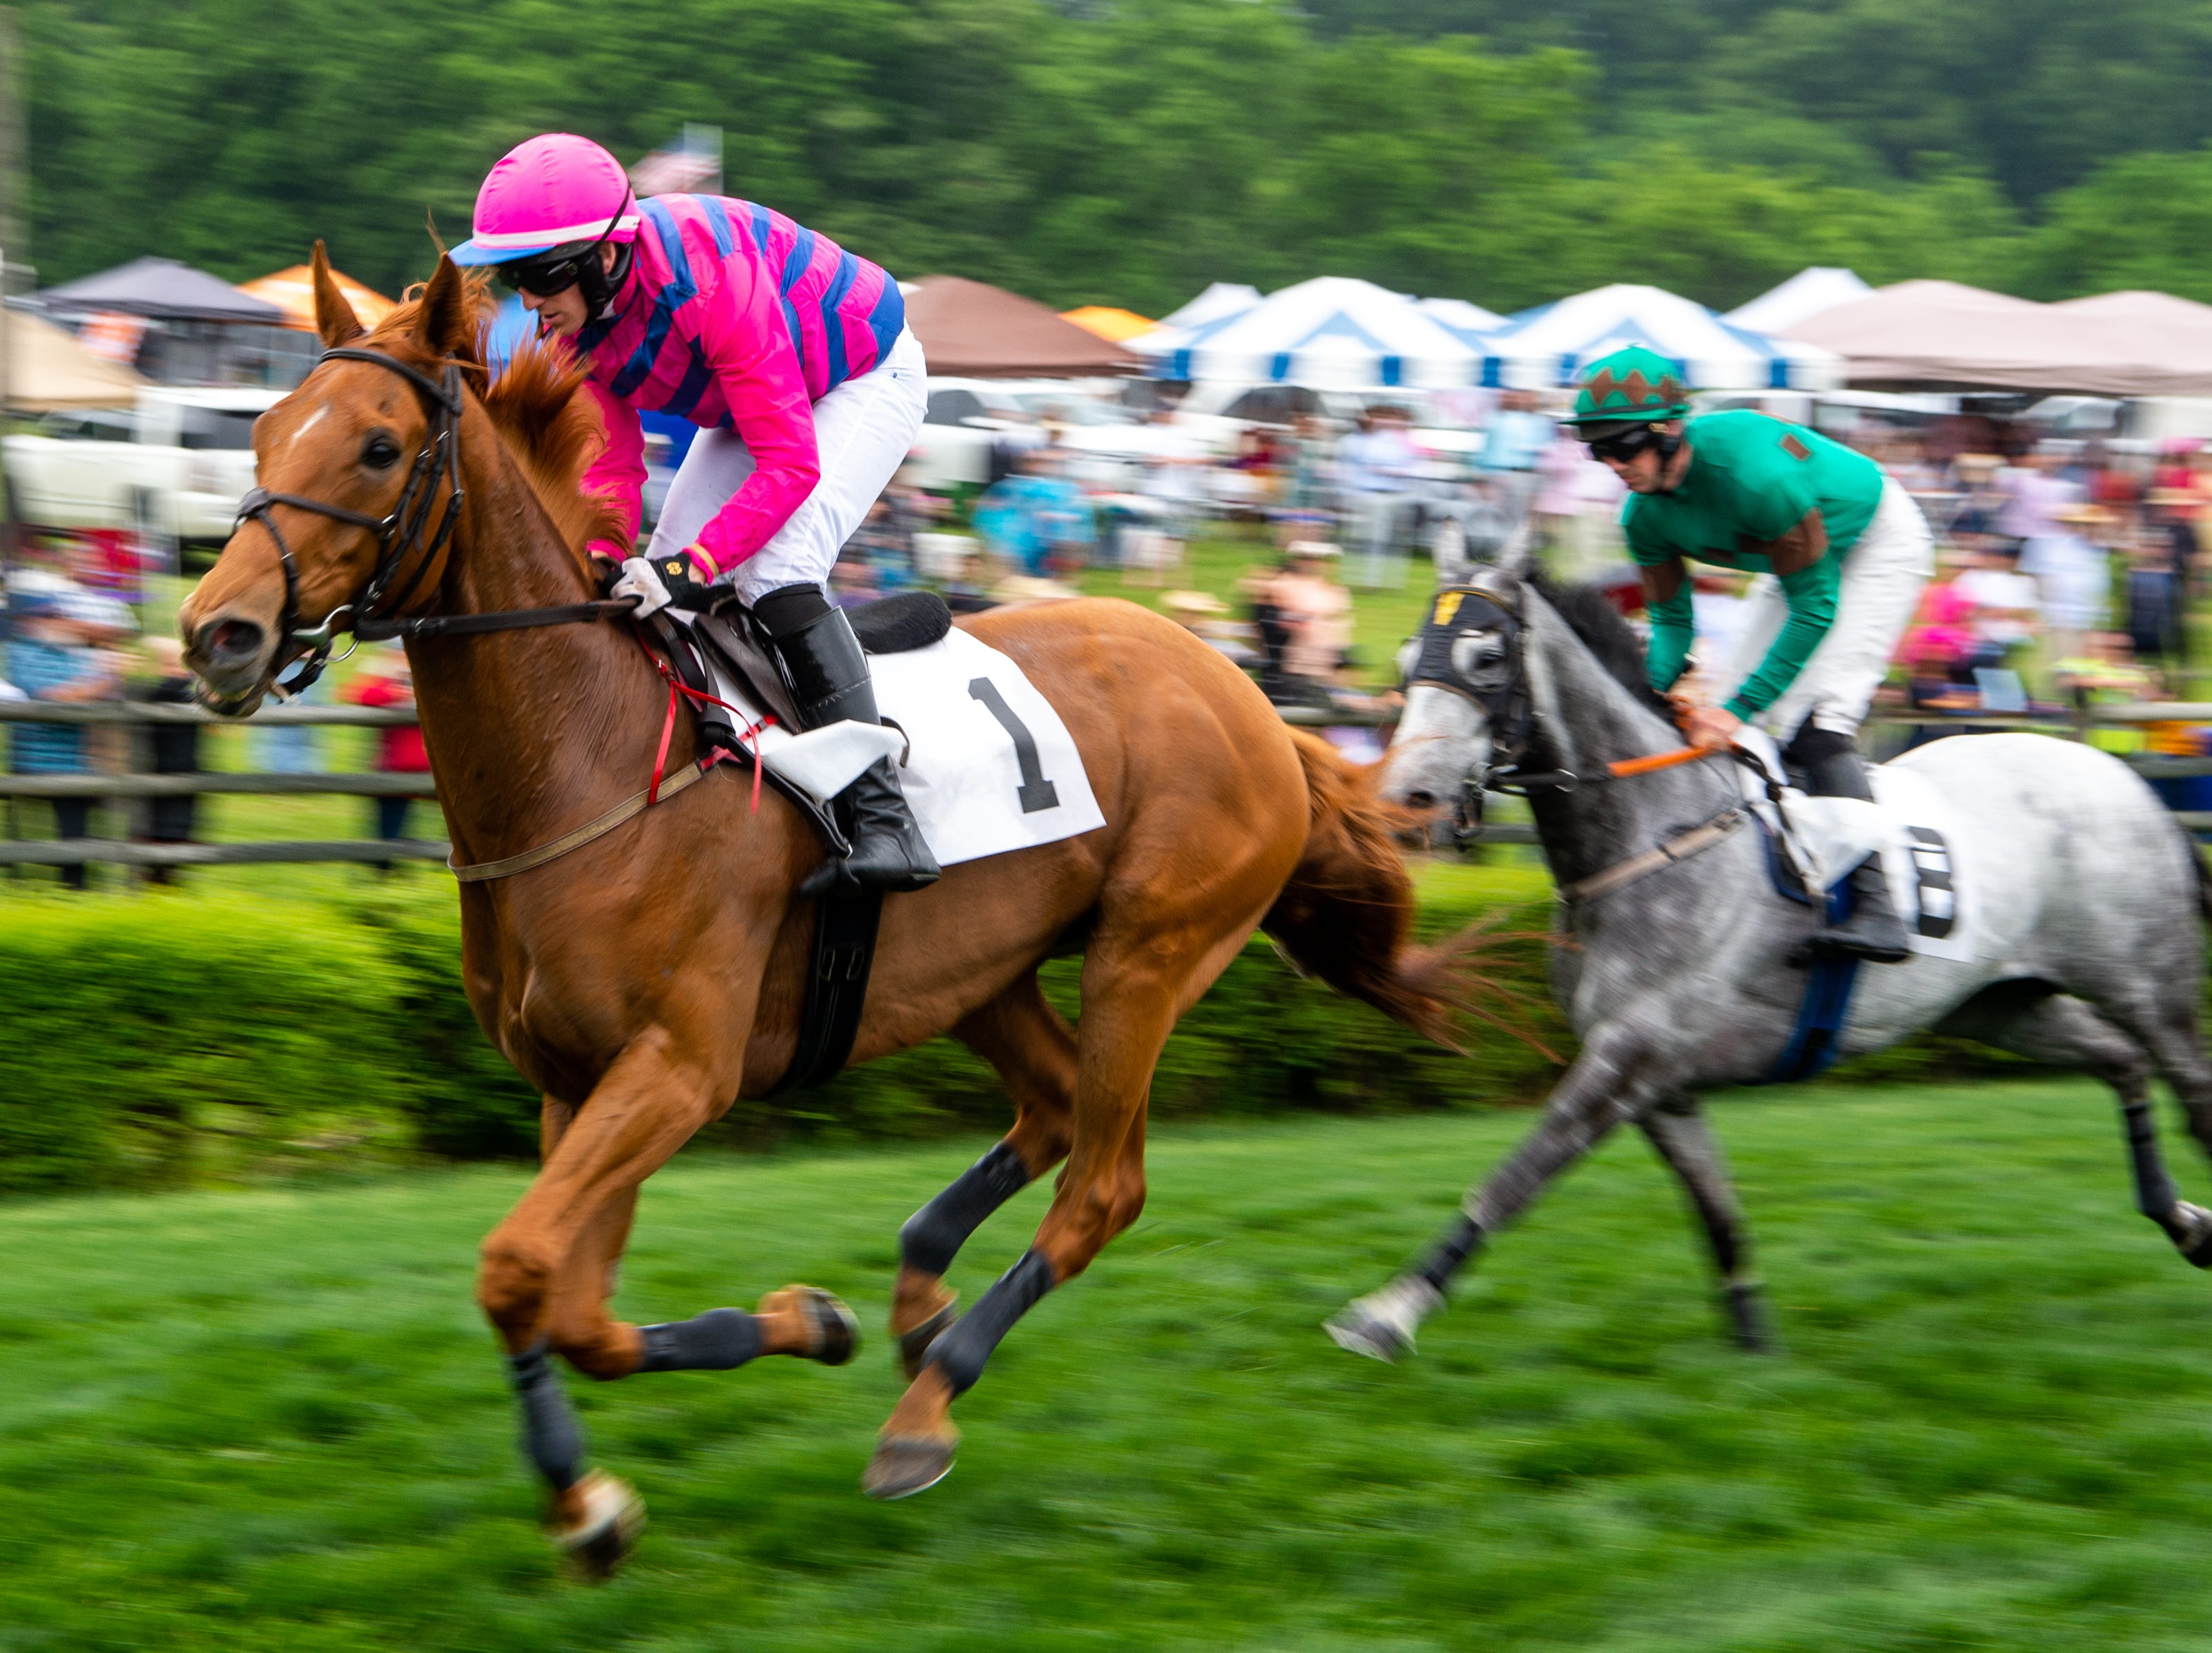 Barry Foley rides Boss Man during the third race of the Iroquois Steeplechase at Percy Warner Park Saturday, May 11, 2019, in Nashville, Tenn.